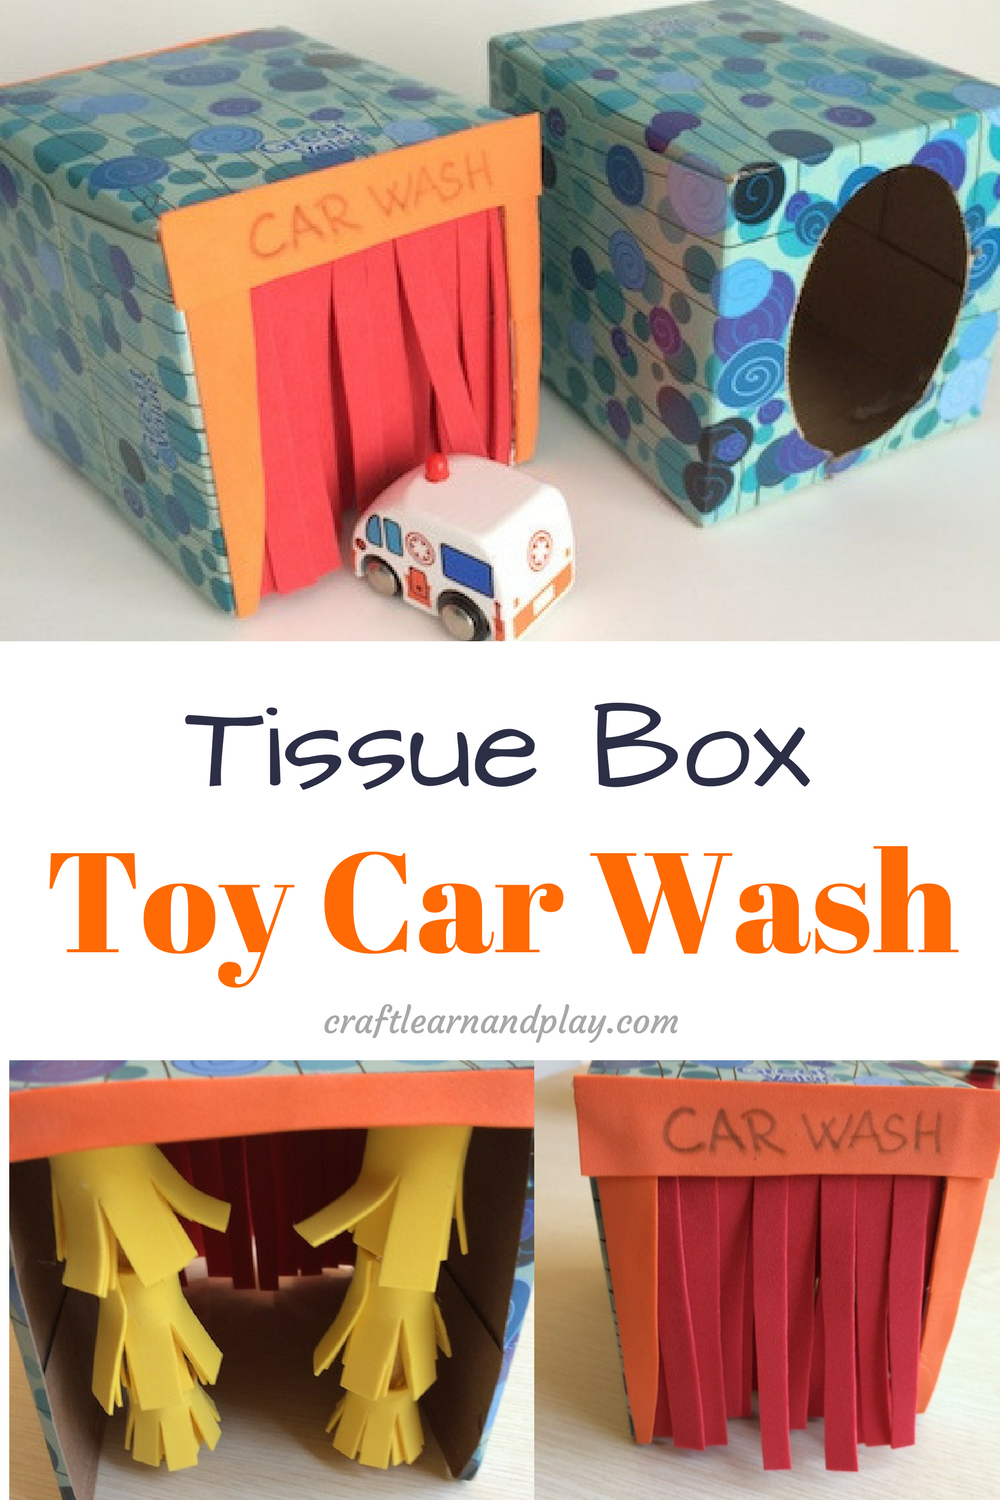 Toddler Car Wash Toy Easy Crafts How To Make A Tissue Box Toy Car Wash Craft